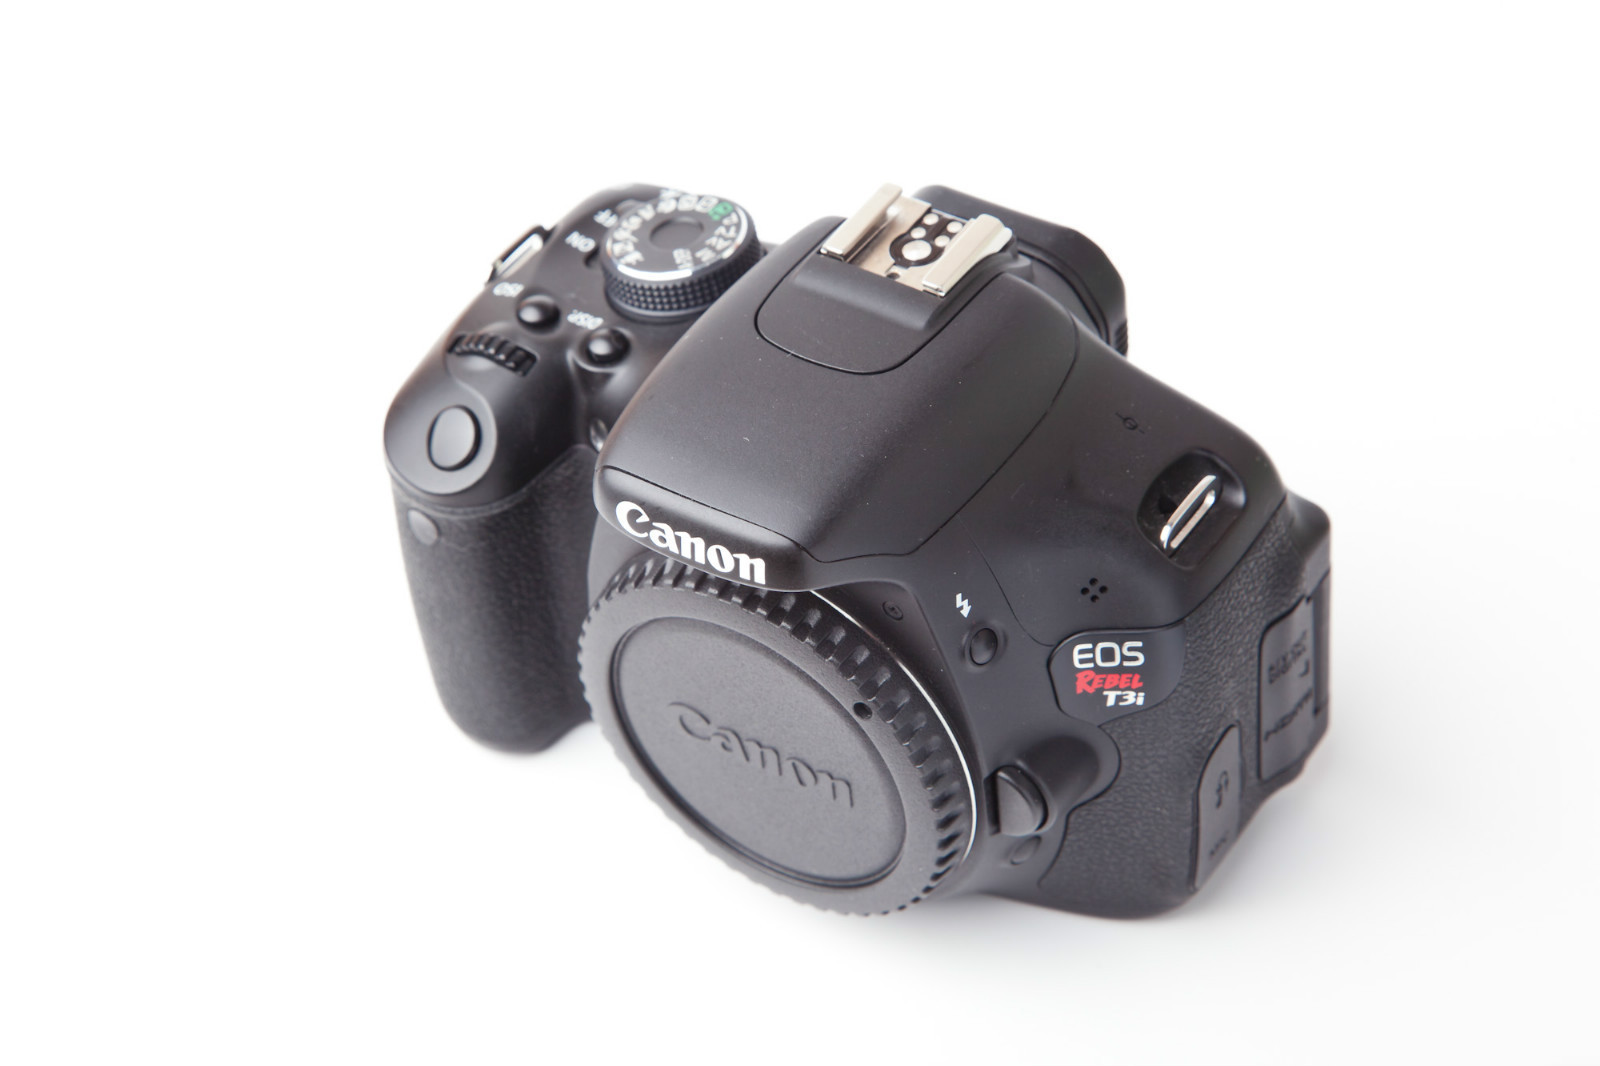 Canon Rebel T3i Top View